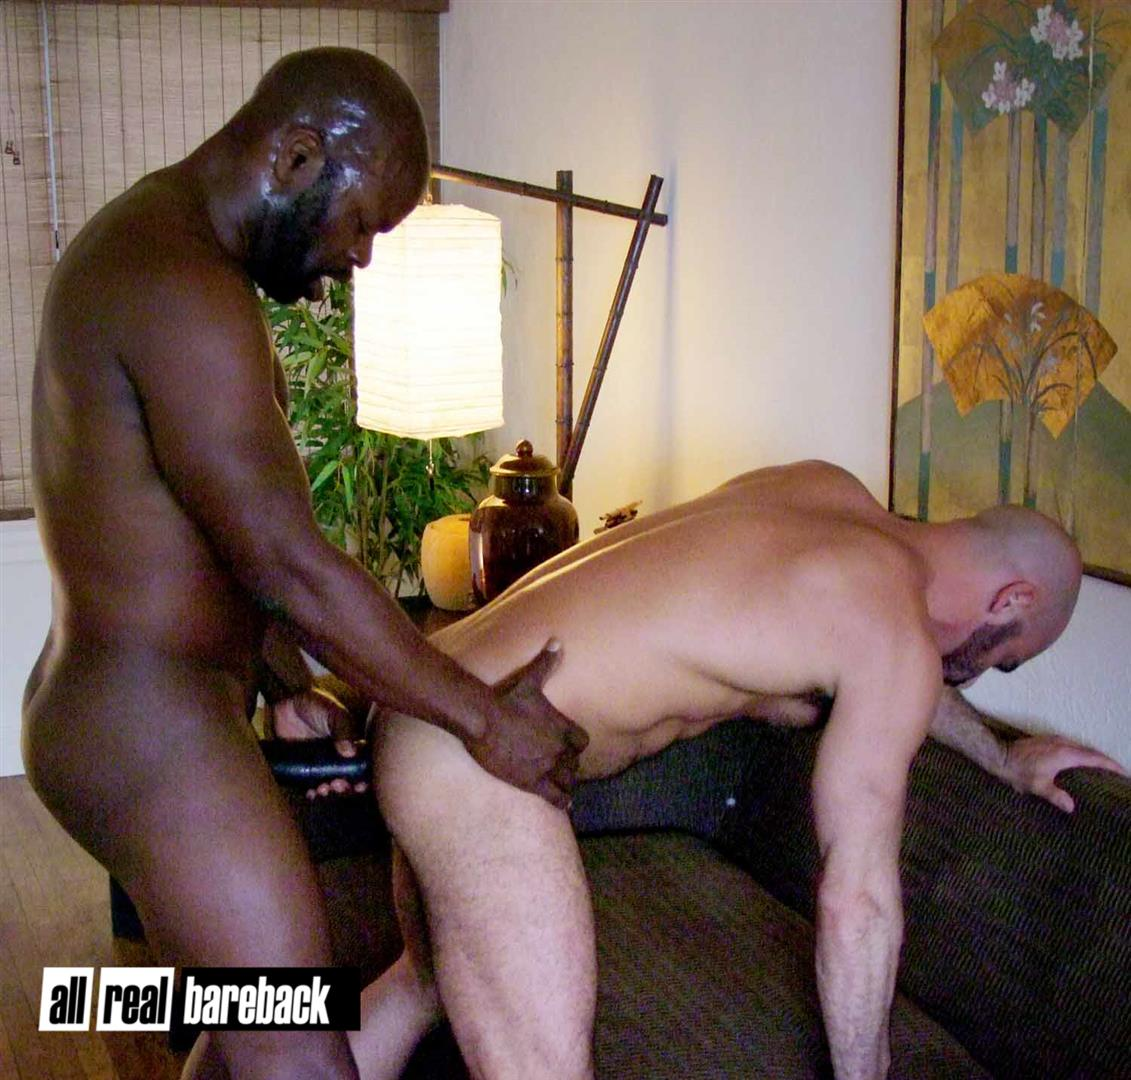 All Real Bareback Cutler X and Adam Russo Real Life Boyfriends Barebacking Amateur Gay Porn 12 Cutler X Films His First Ever Bareback Video With Real Life BF Adam Russo